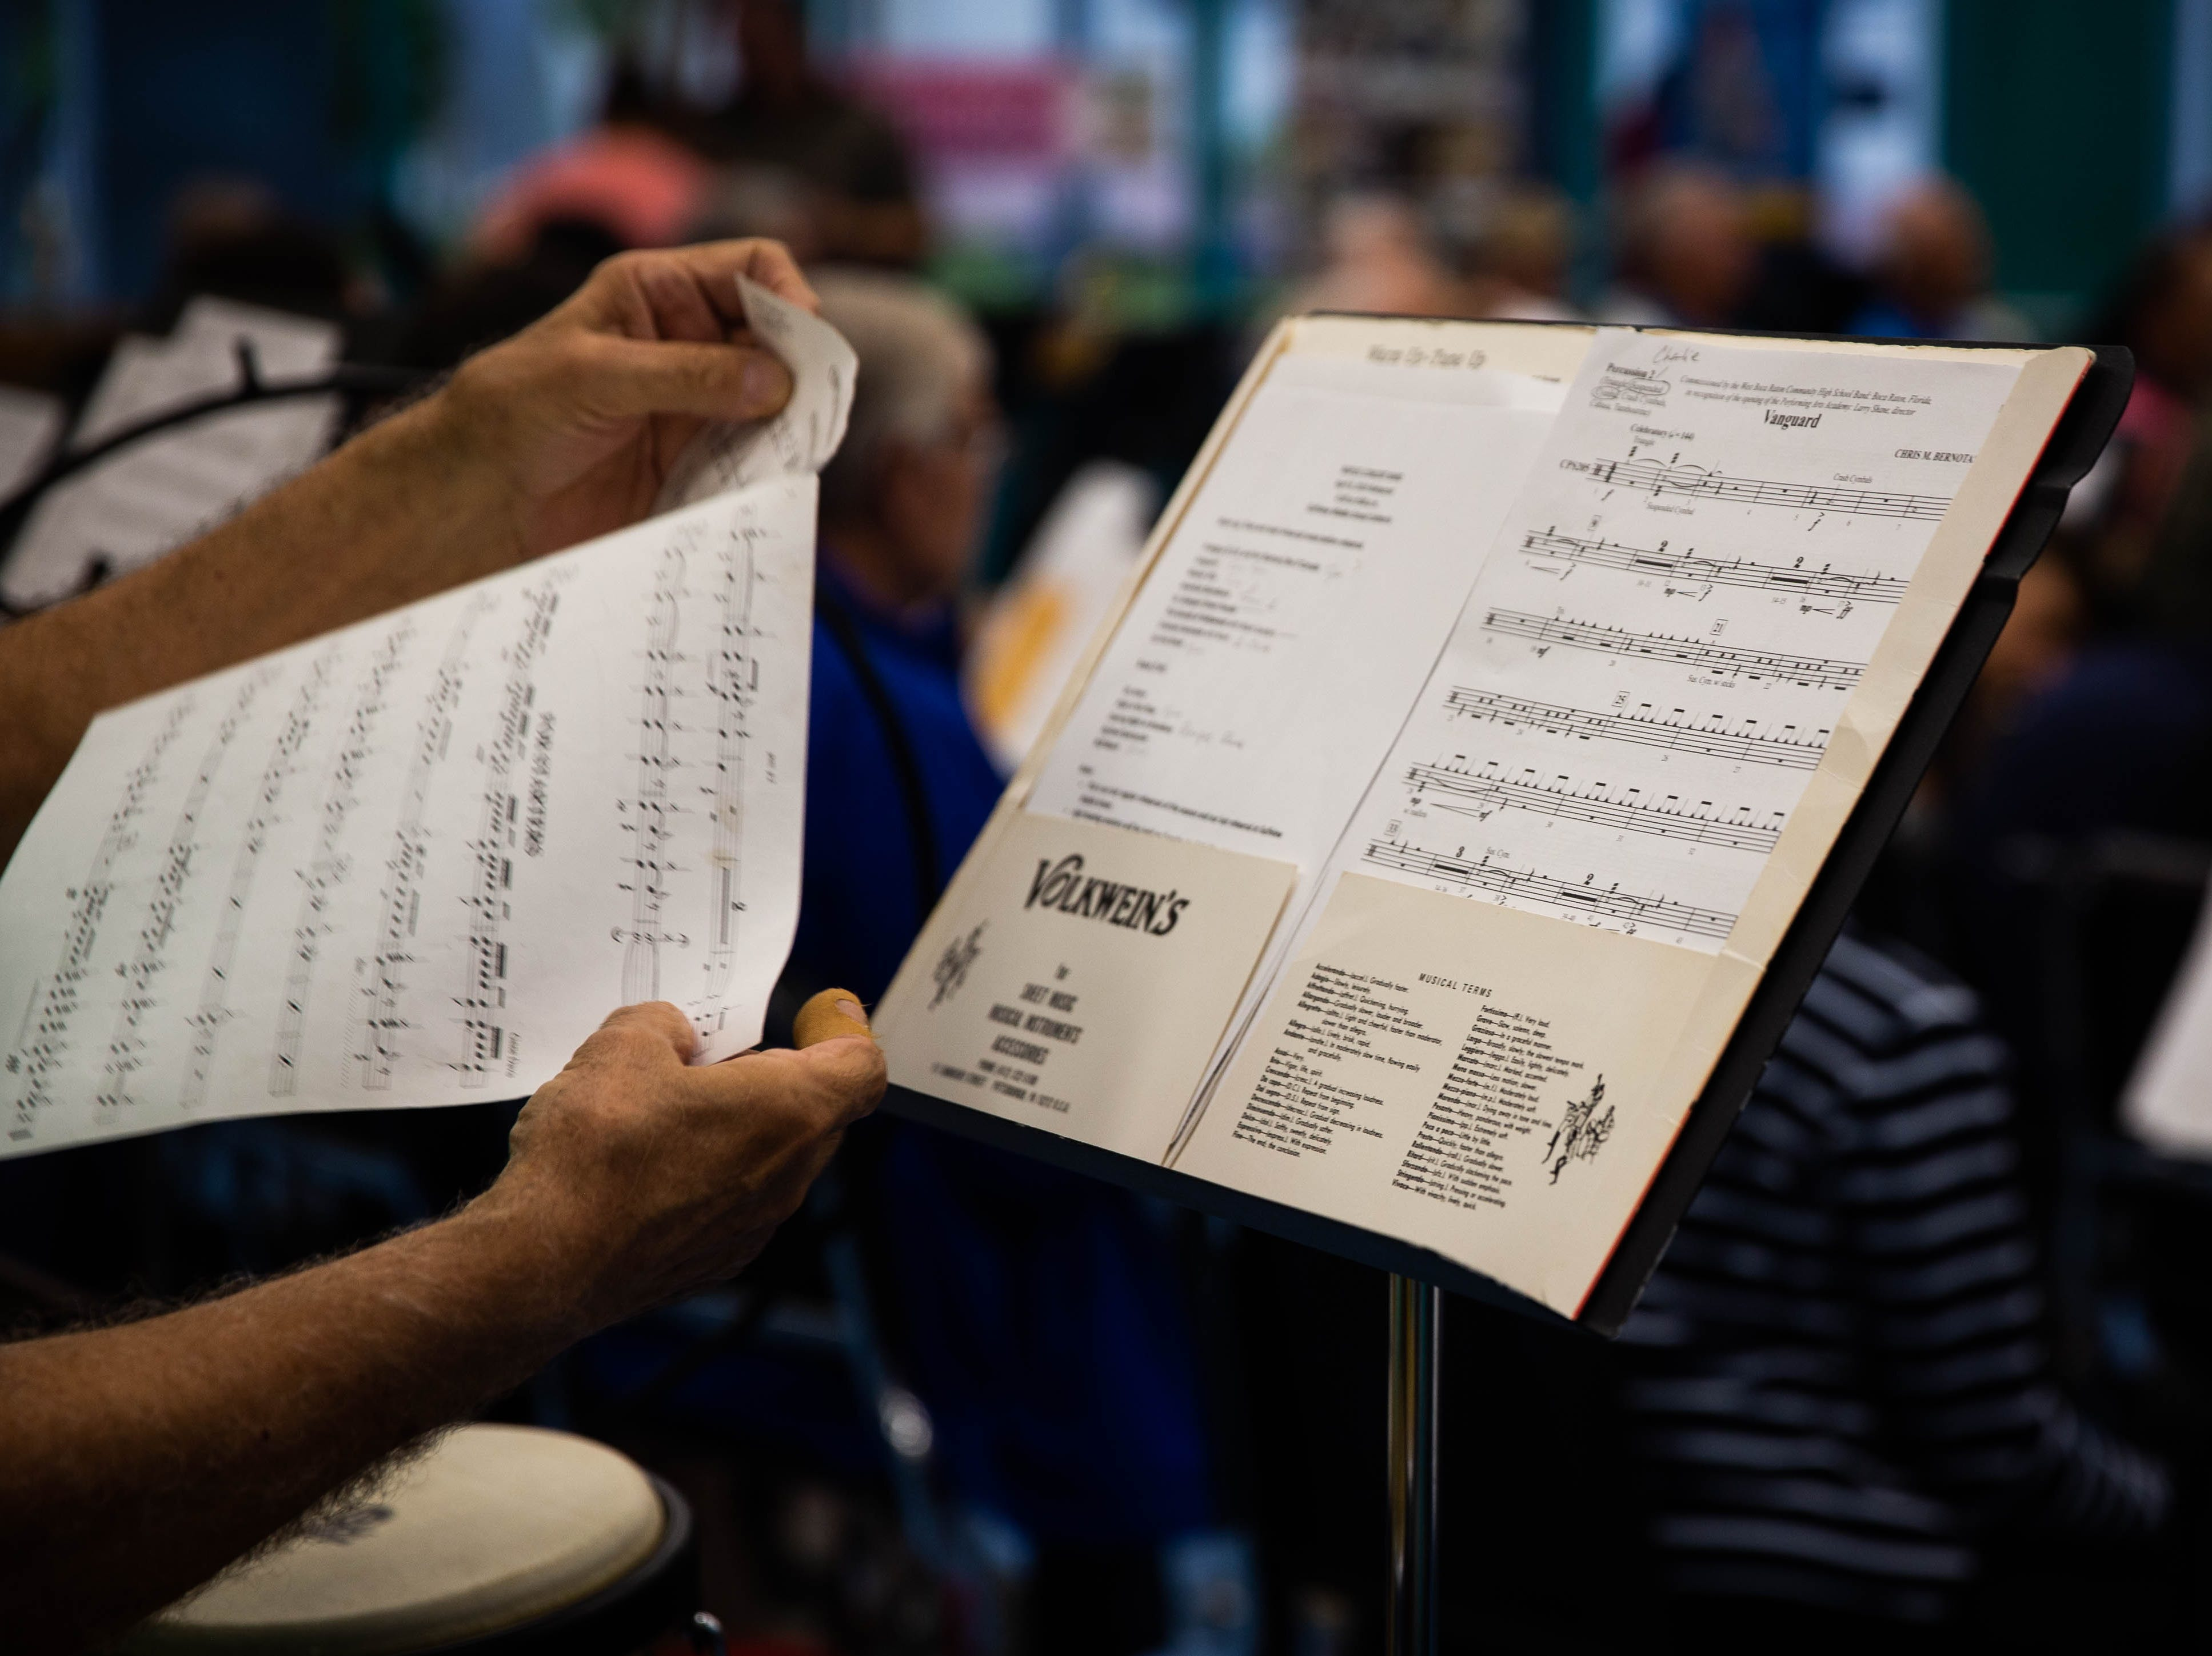 Sheets of music at the Naples Concert Band practice held at Gulfview Middle School on April 9, 2019. After 40 years using the facility, this is their last practice.